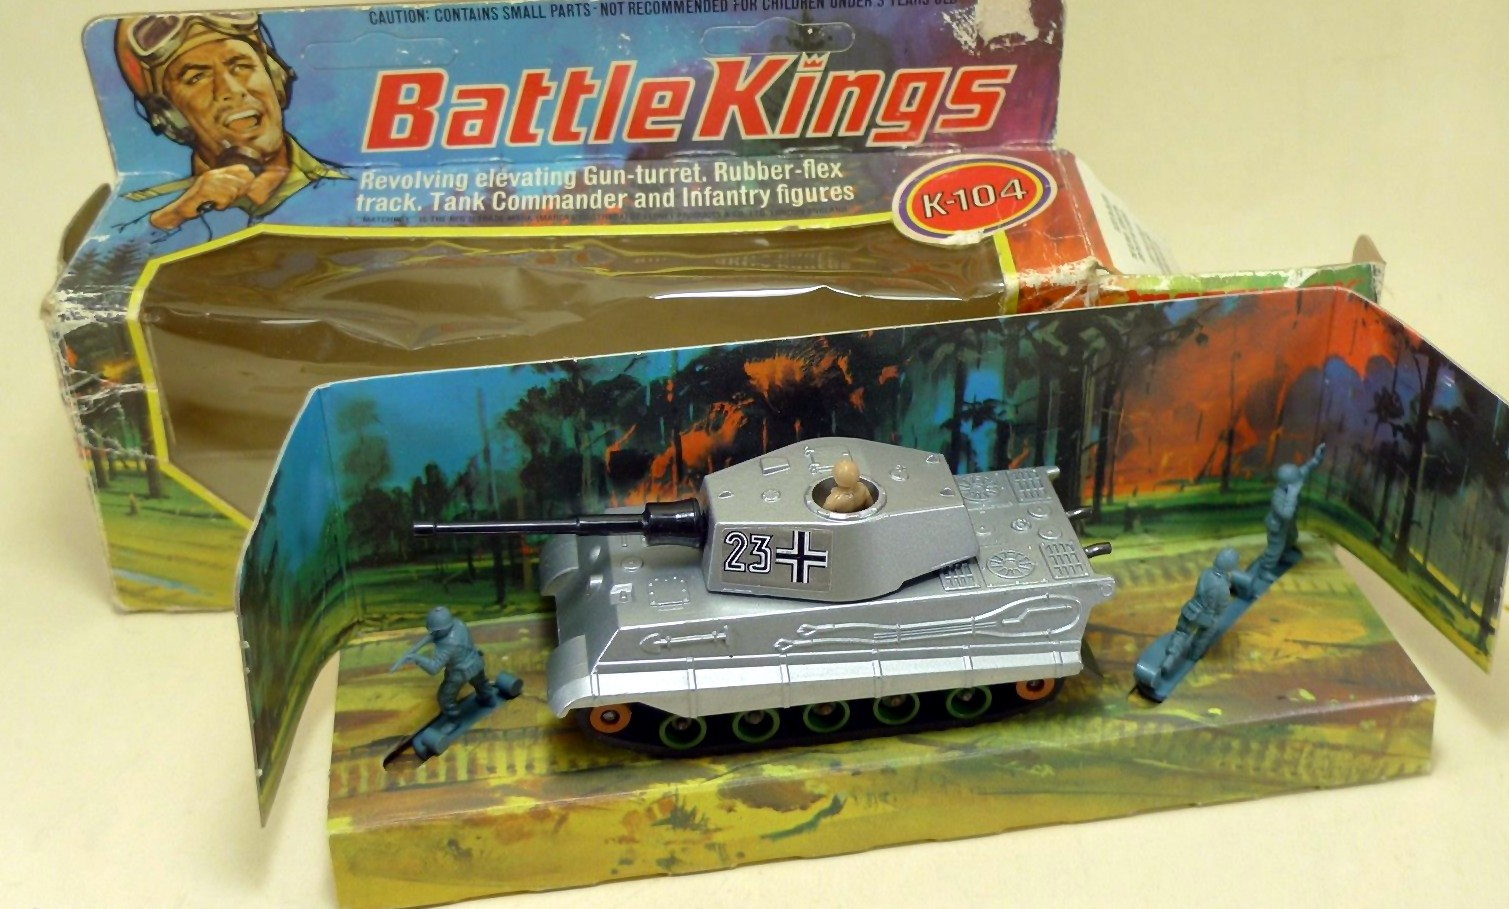 King Tiger Tank K 104 Matchbox Cars Wiki Fandom